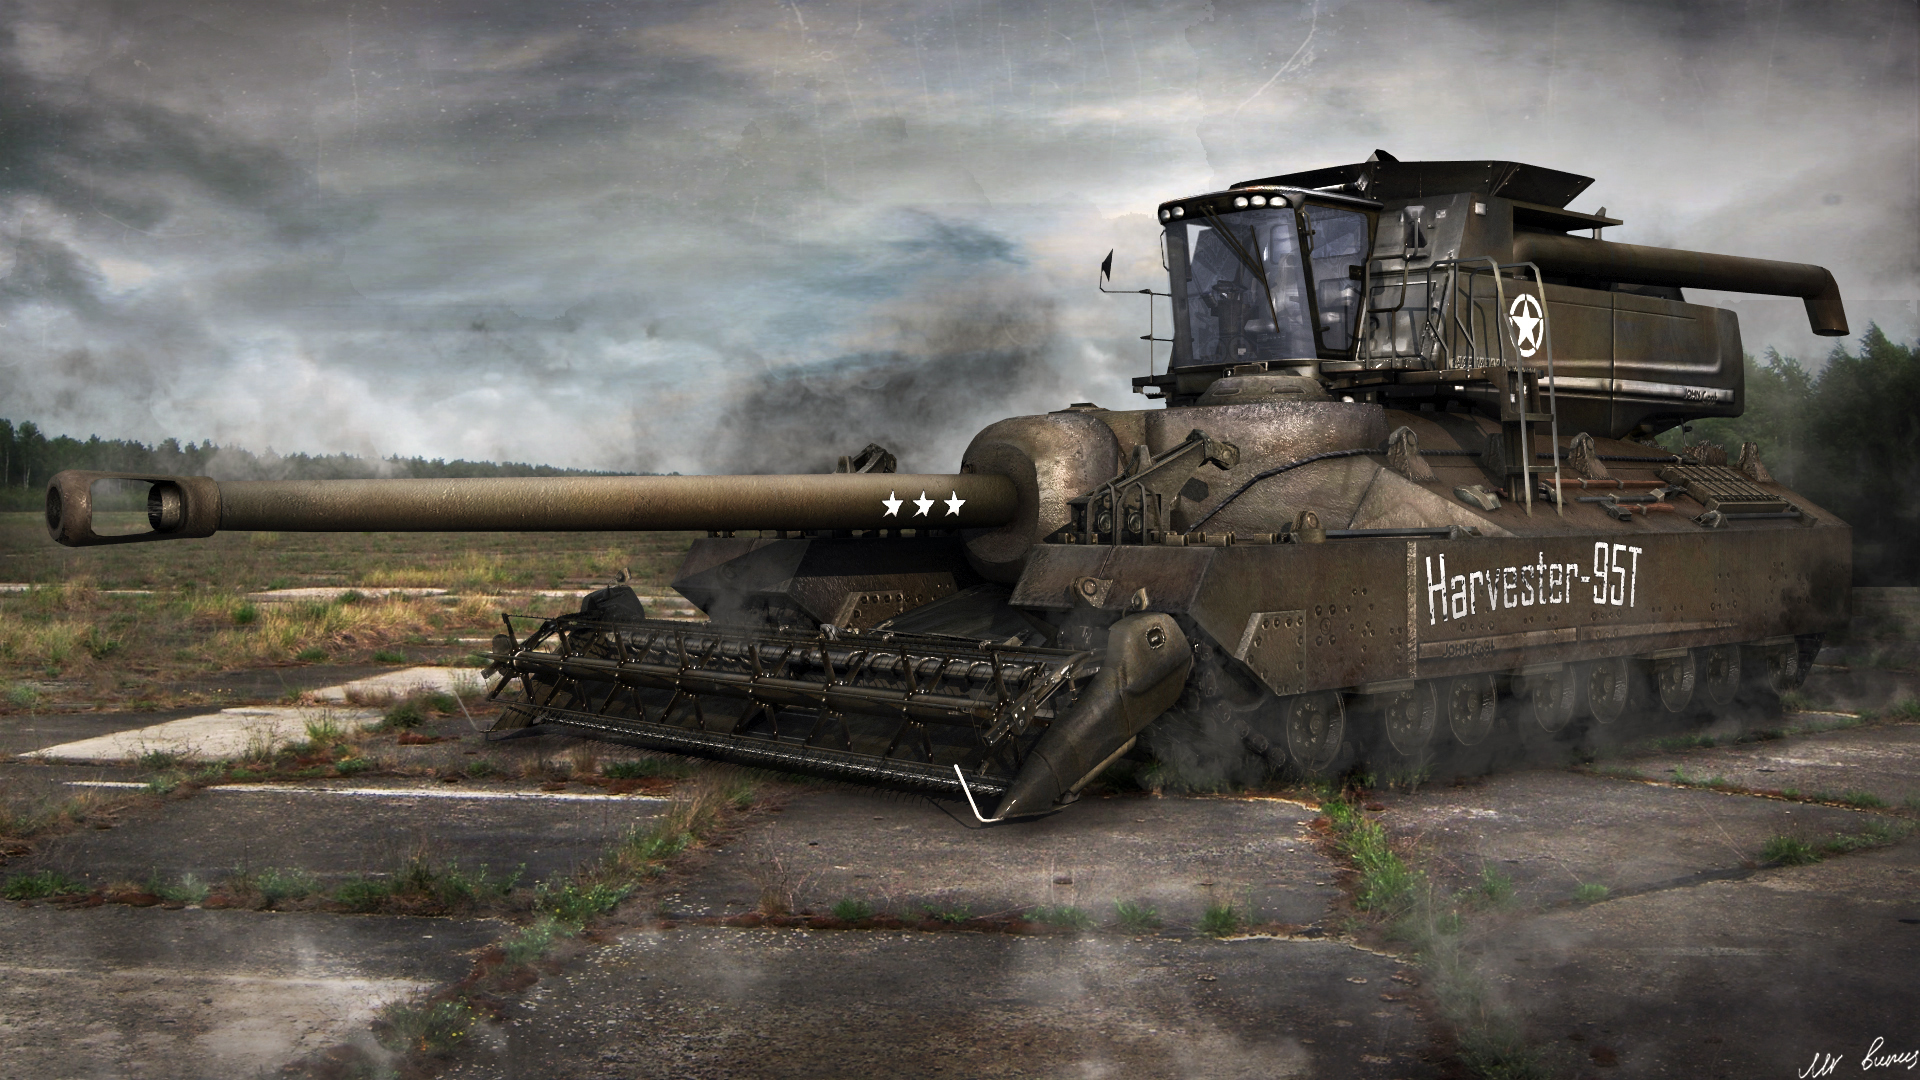 Free download Download Wallpaper 1920x1080 World of tanks